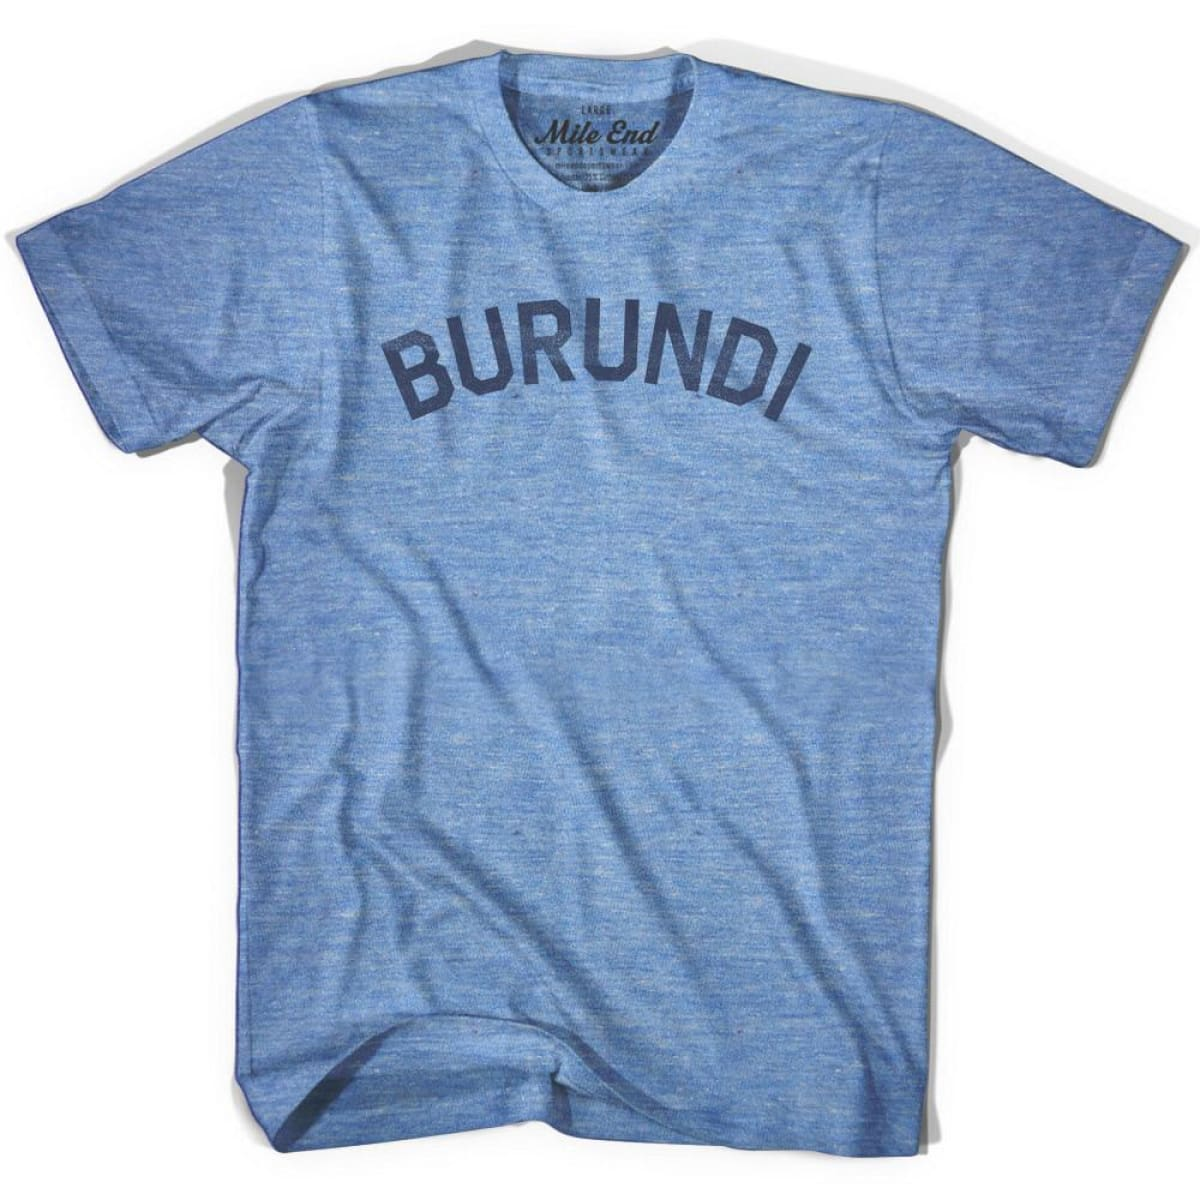 Burundi City Vintage T-shirt - Athletic Blue / Adult X-Small - Mile End City